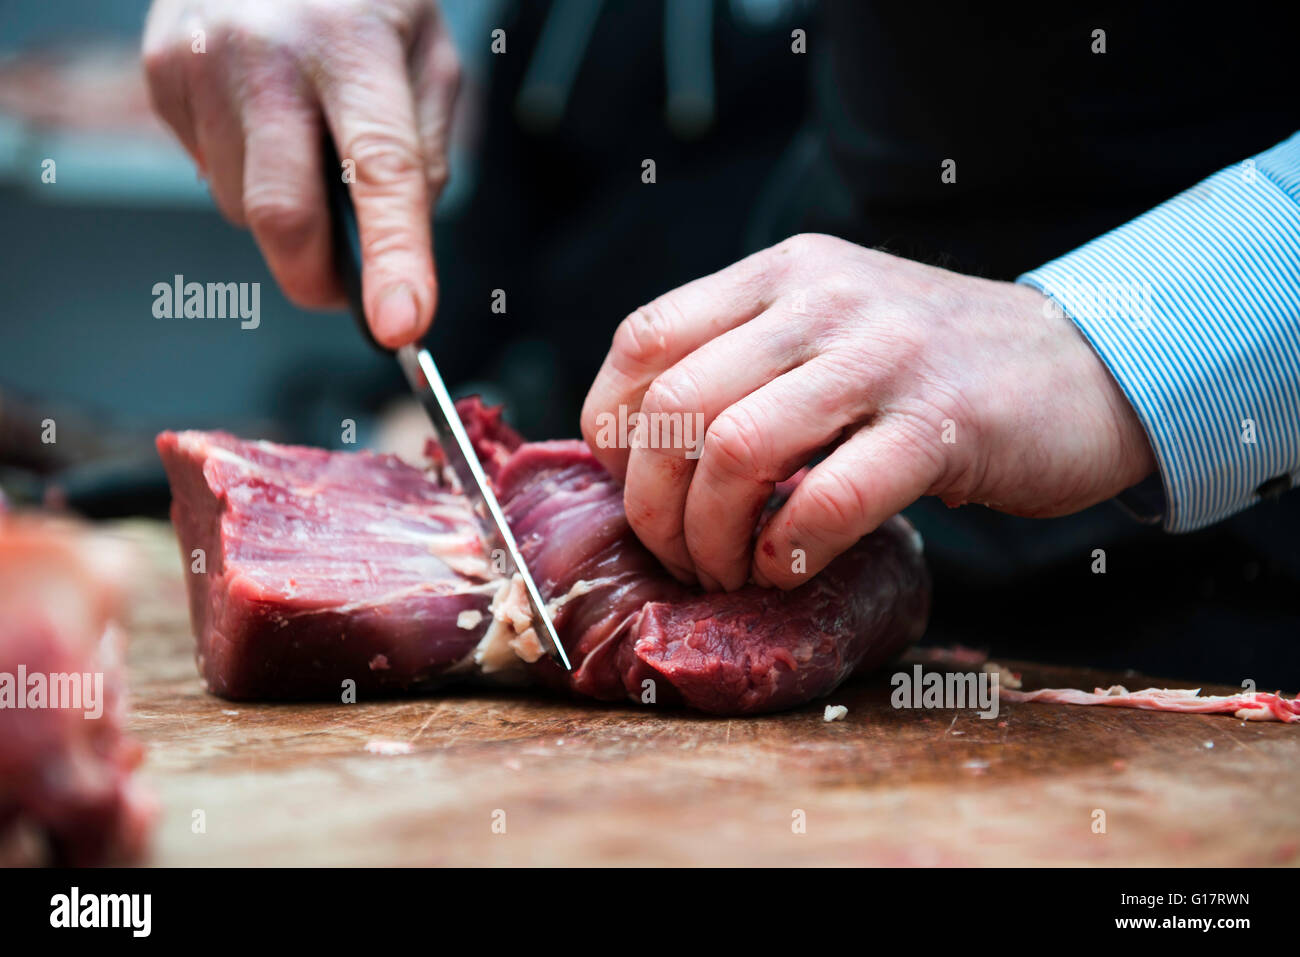 Butcher preparing meat in butcher's shop, close-up - Stock Image